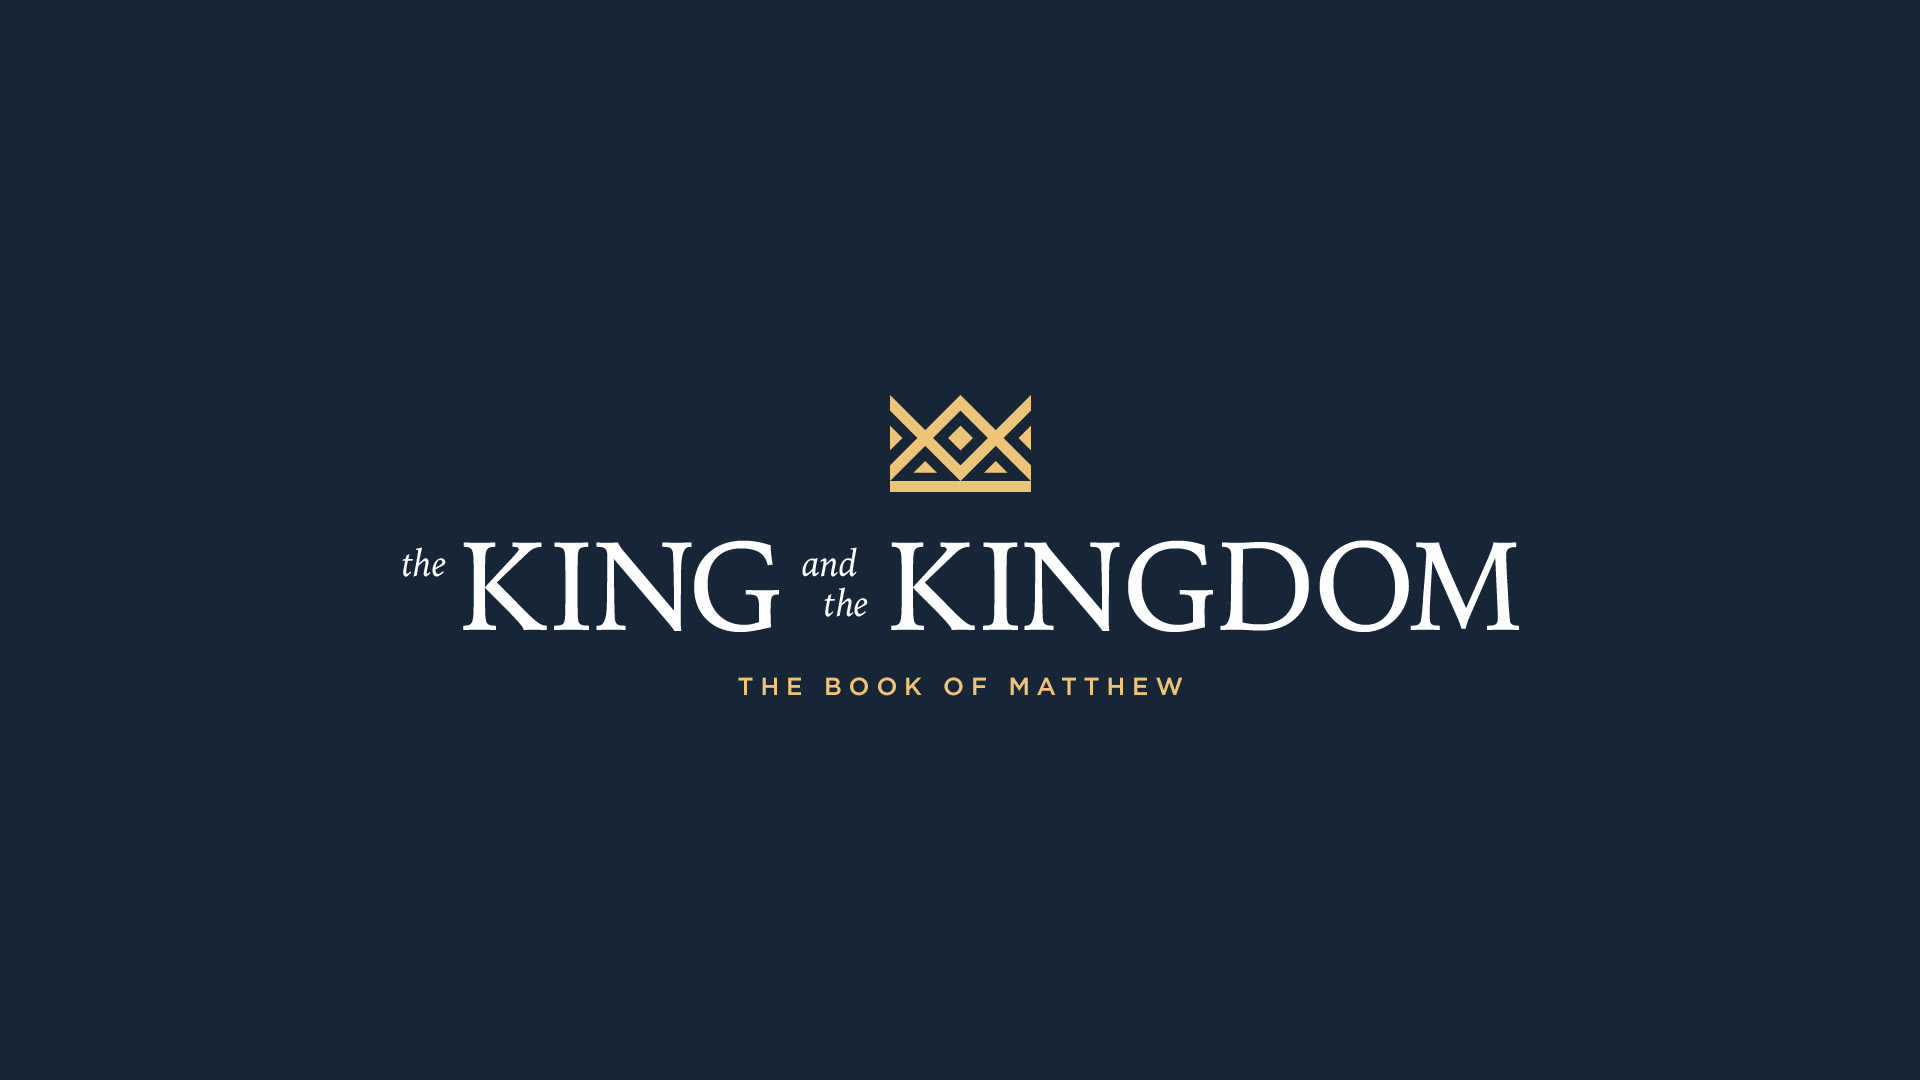 King and the Kingdom_Spr2021_1920x1080 image